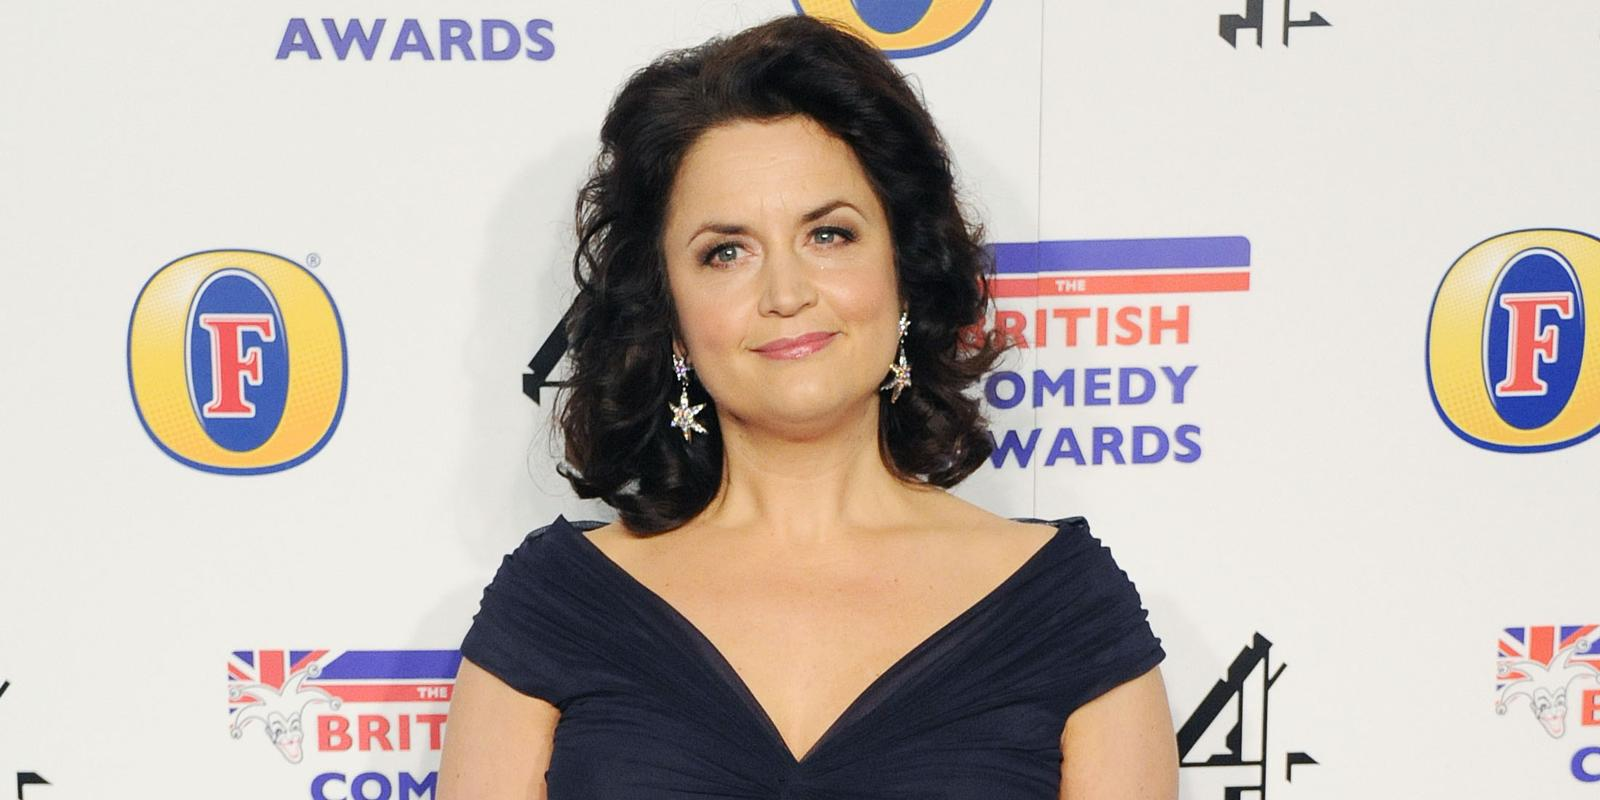 ruth jones familyruth jones photos, ruth jones, ruth jones weight loss, ruth jones and james corden, ruth jones and david peet, ruth jones husband, ruth jones weight loss 2014, ruth jones weight loss 2015, ruth jones 2015, ruth jones tesco advert, ruth jones net worth, ruth jones twitter, ruth jones tesco, ruth jones family, ruth jones mcclendon, ruth jones imdb, ruth jones interview, ruth jones facebook, ruth jones weight, ruth jones feet